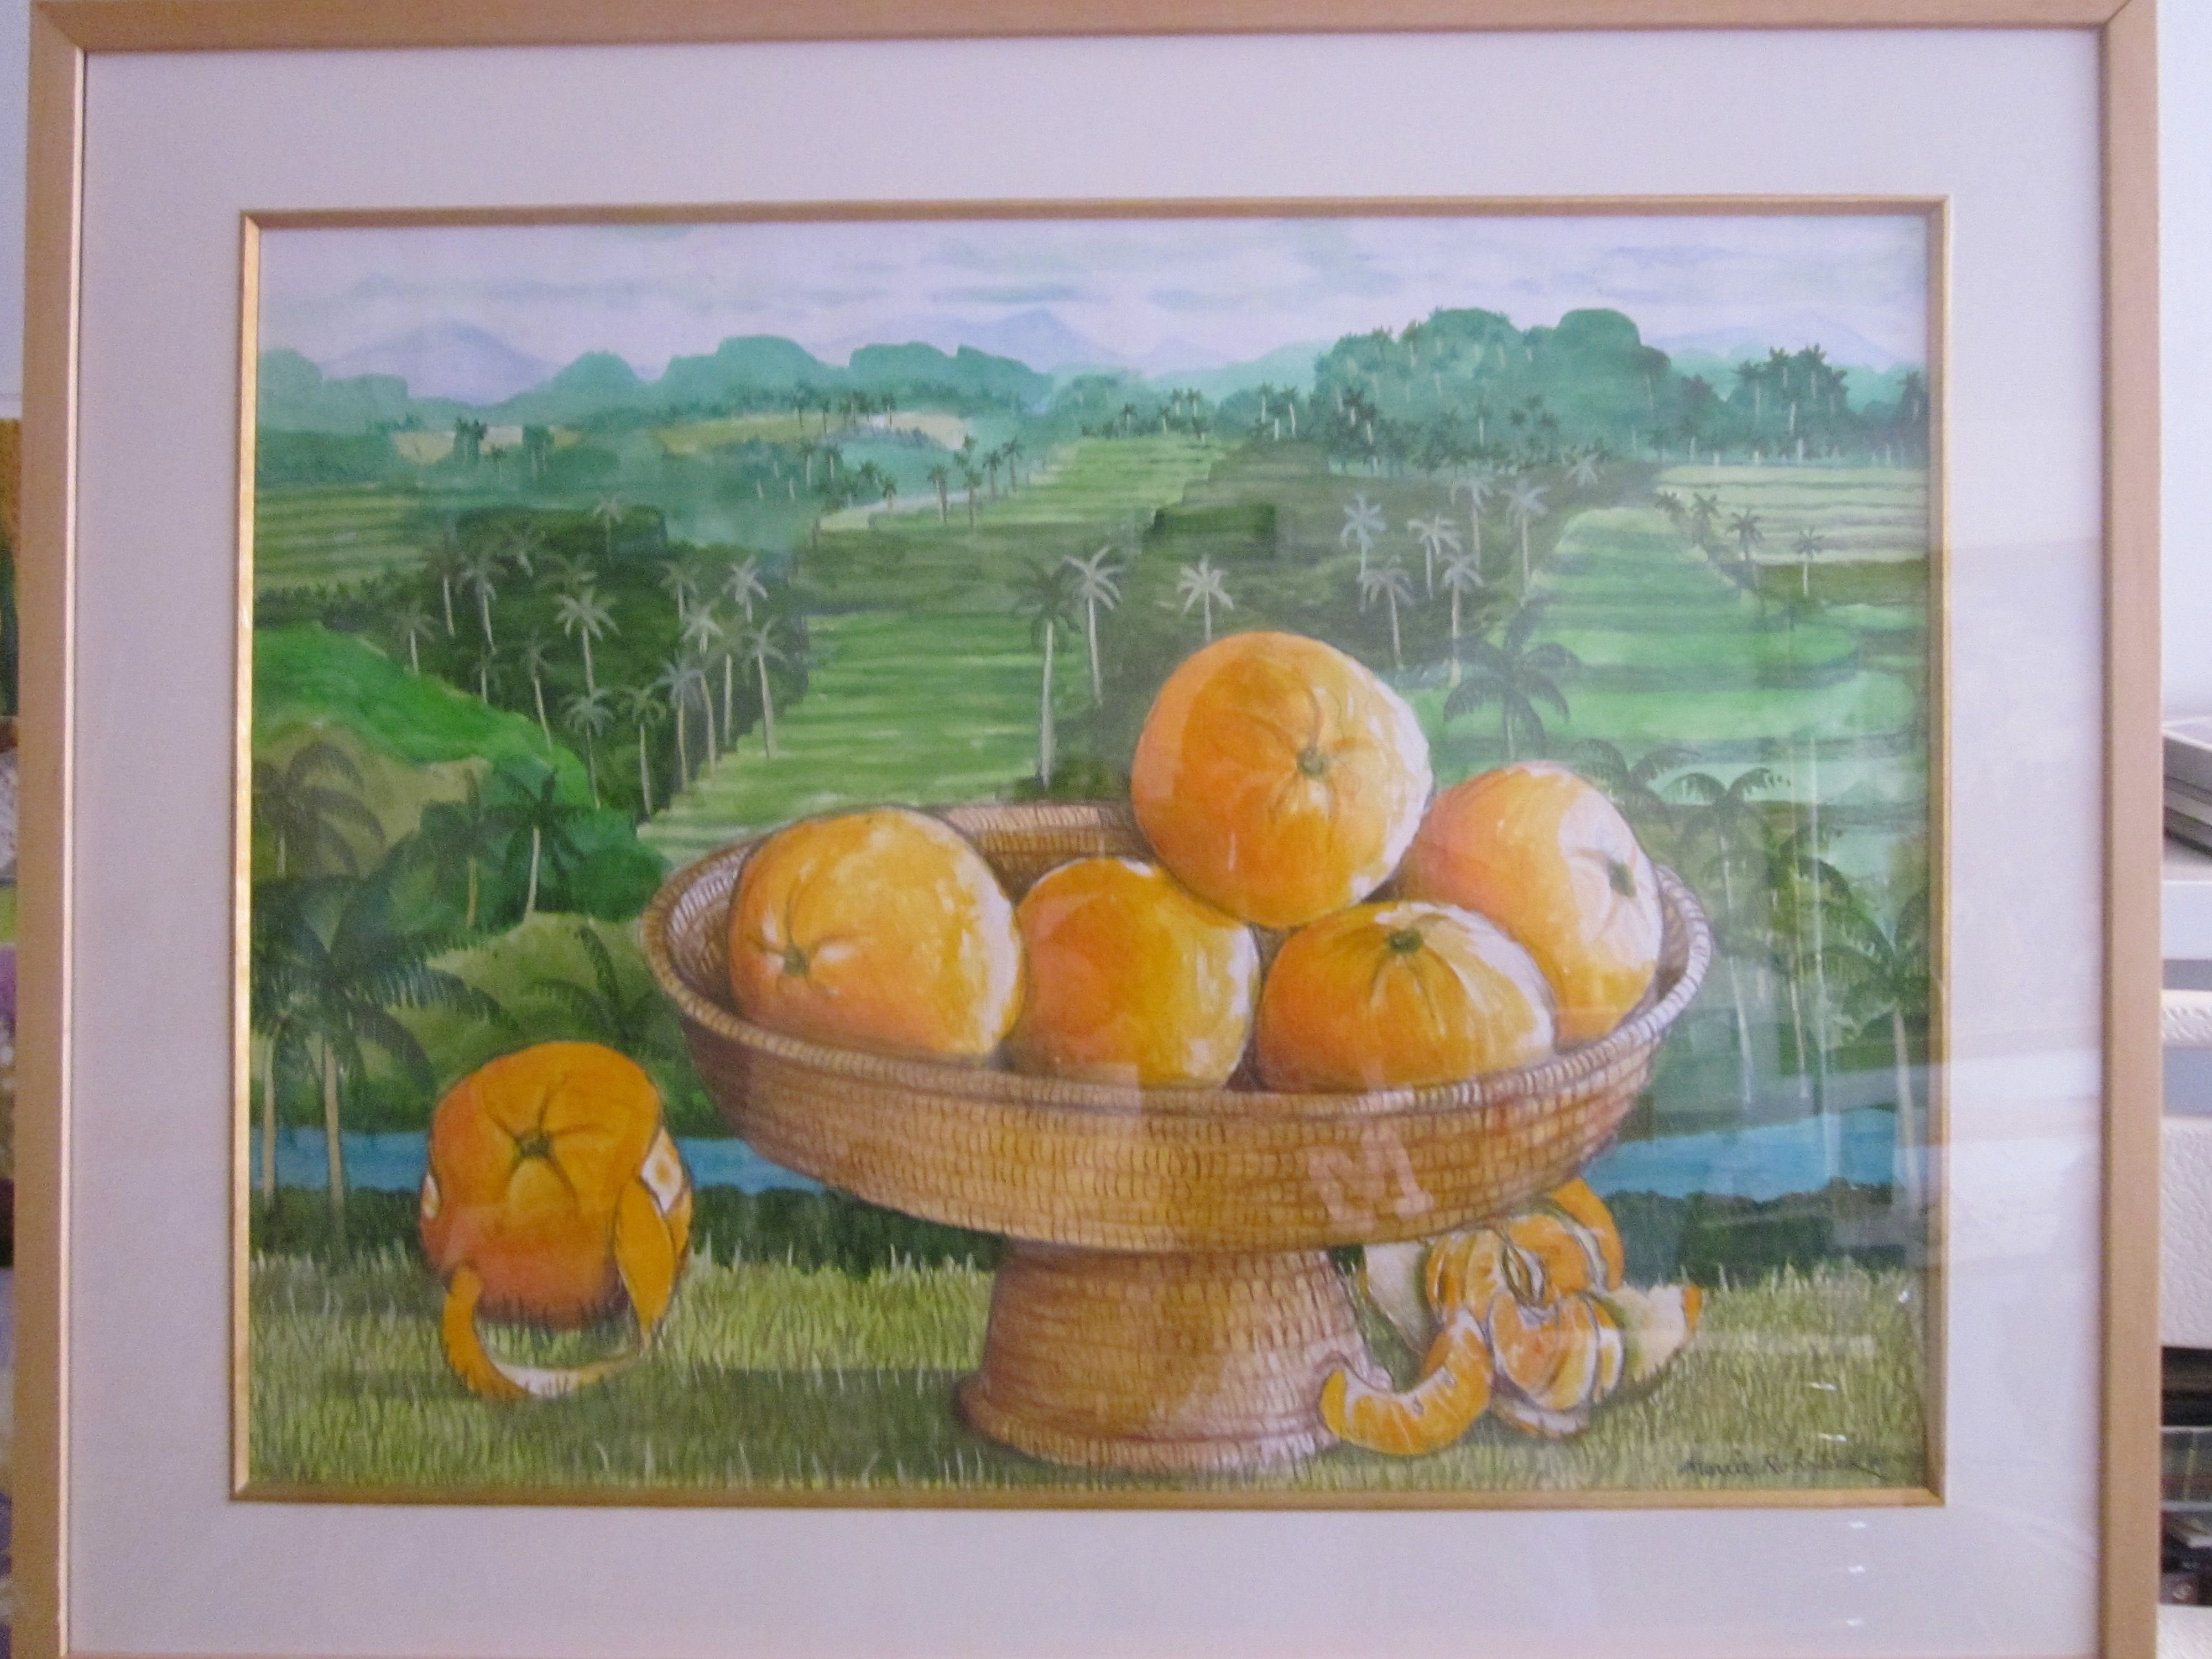 """""""Mandarins & Rice Terraces, Bali"""" by Morrie Rohrlick, 24"""" x 18 1/2"""", acrylics & colored pencils on paper (#25)"""